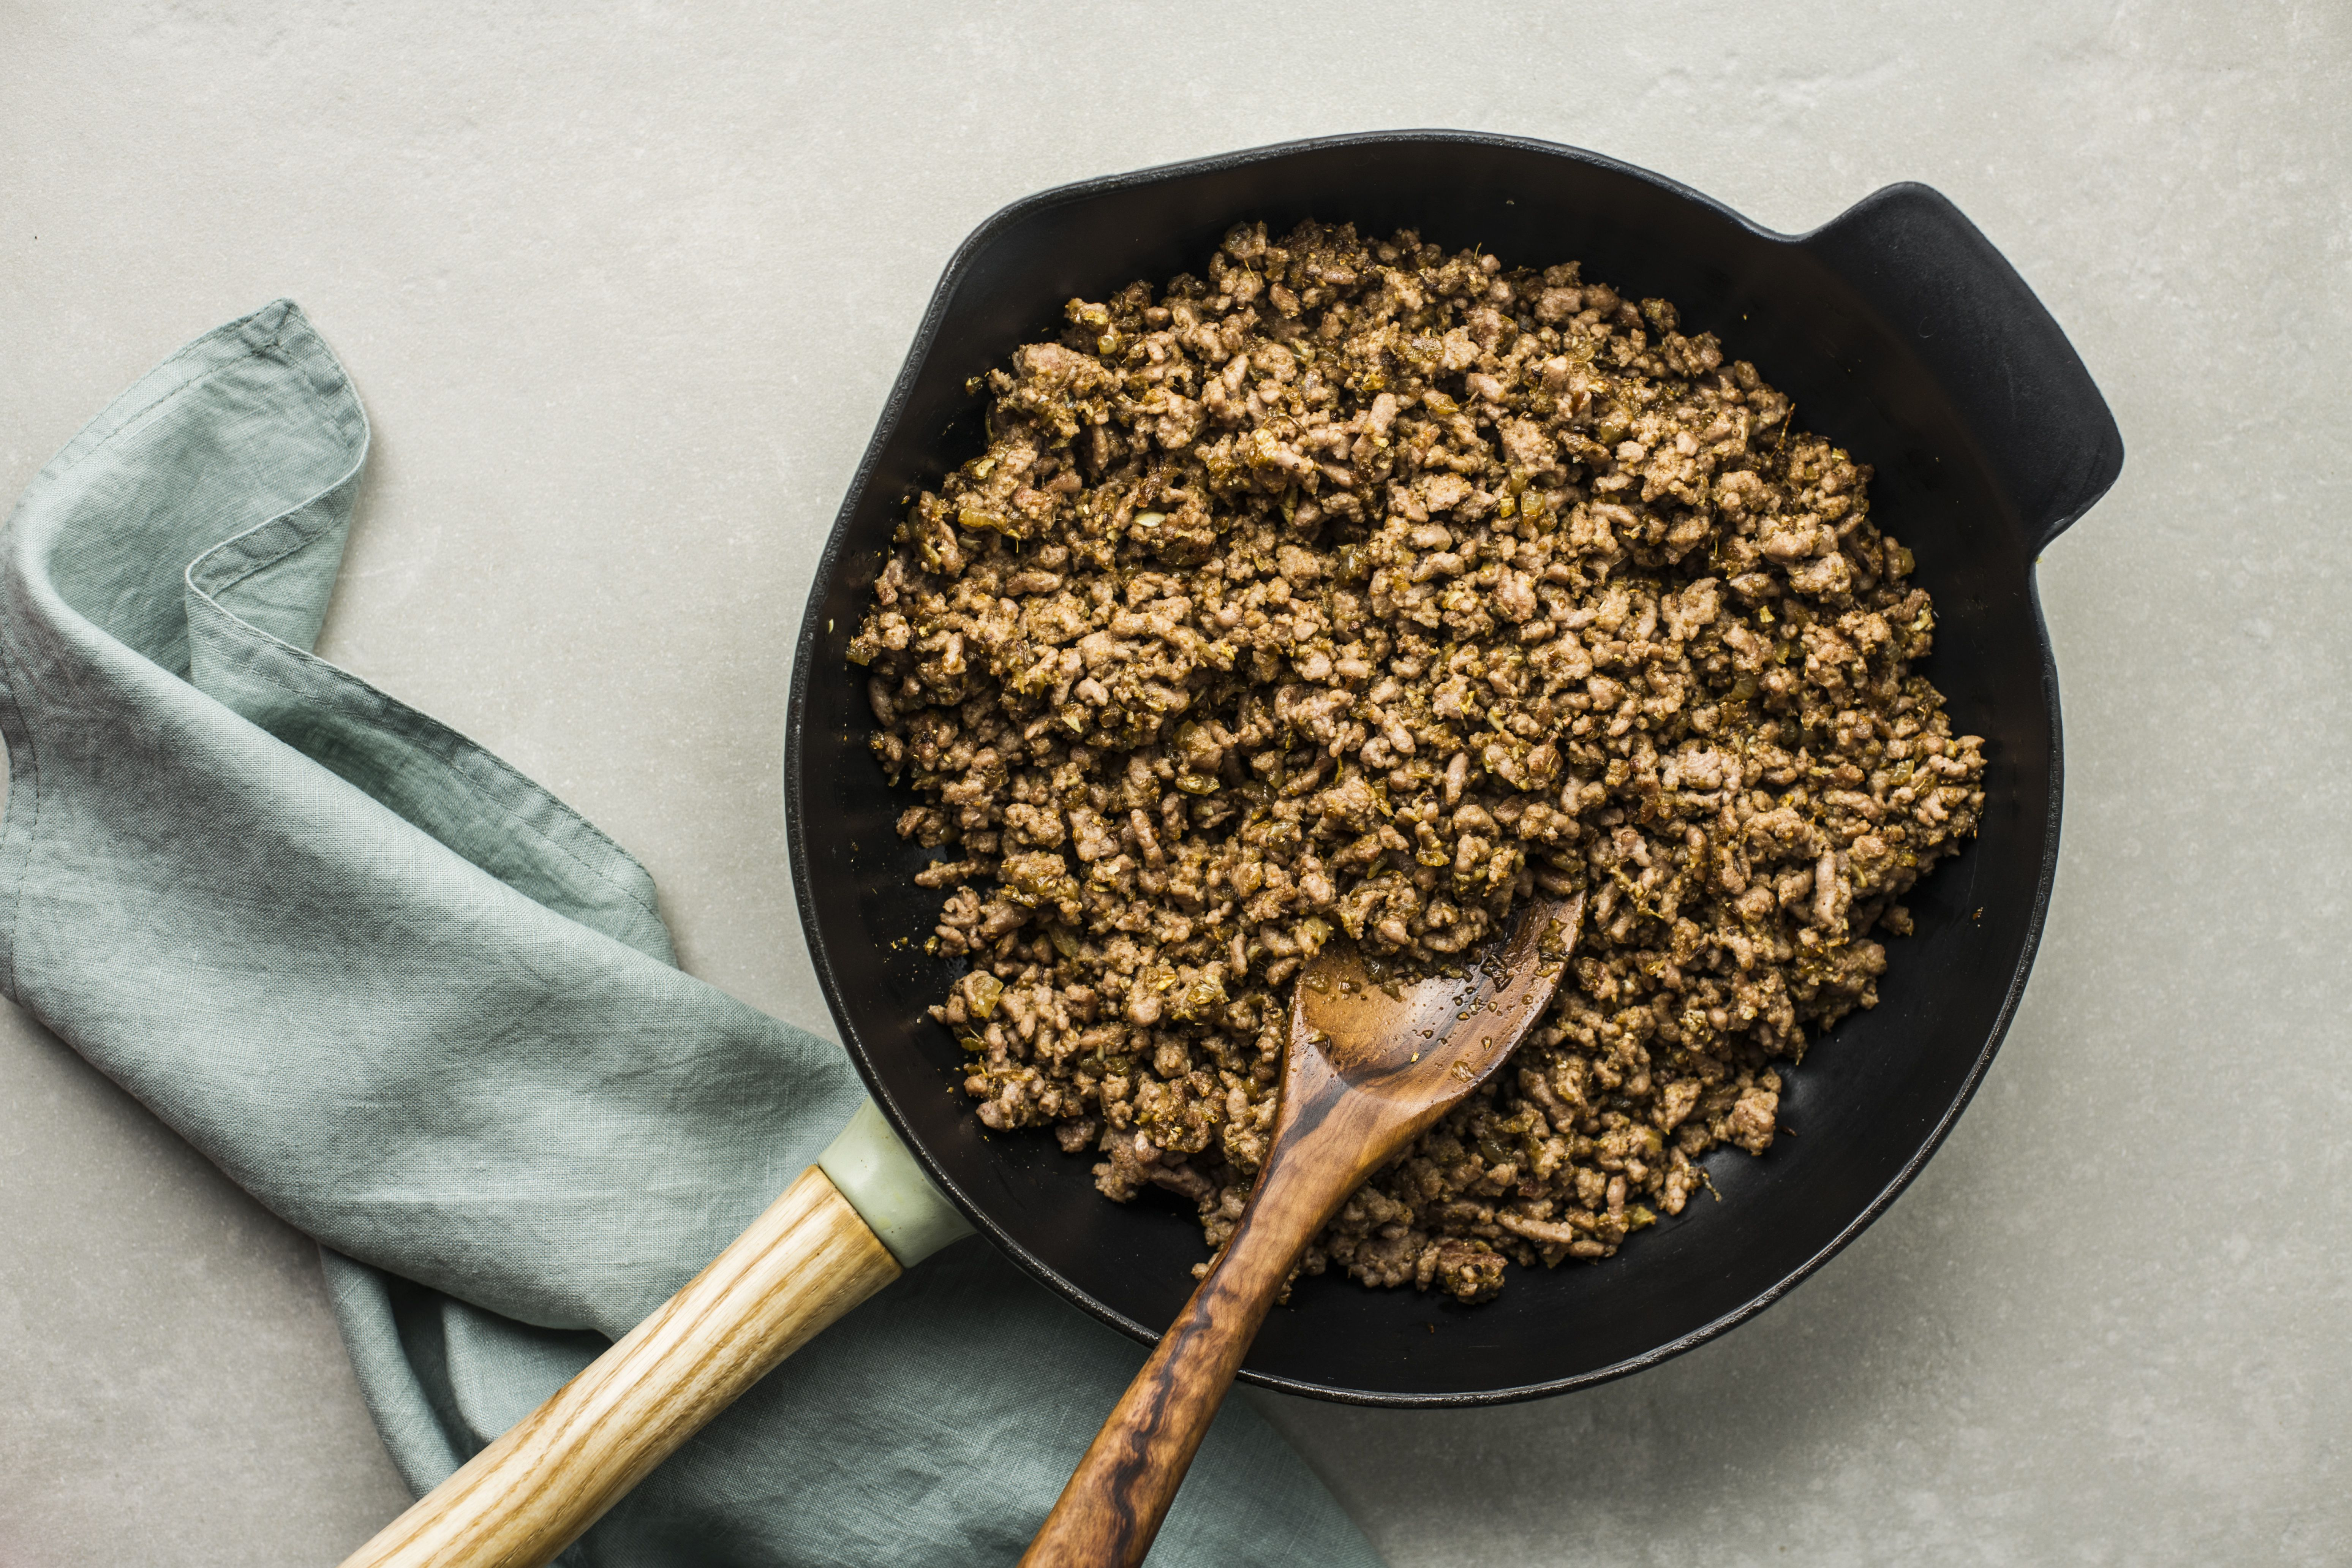 Sauteing meat and spice mixture